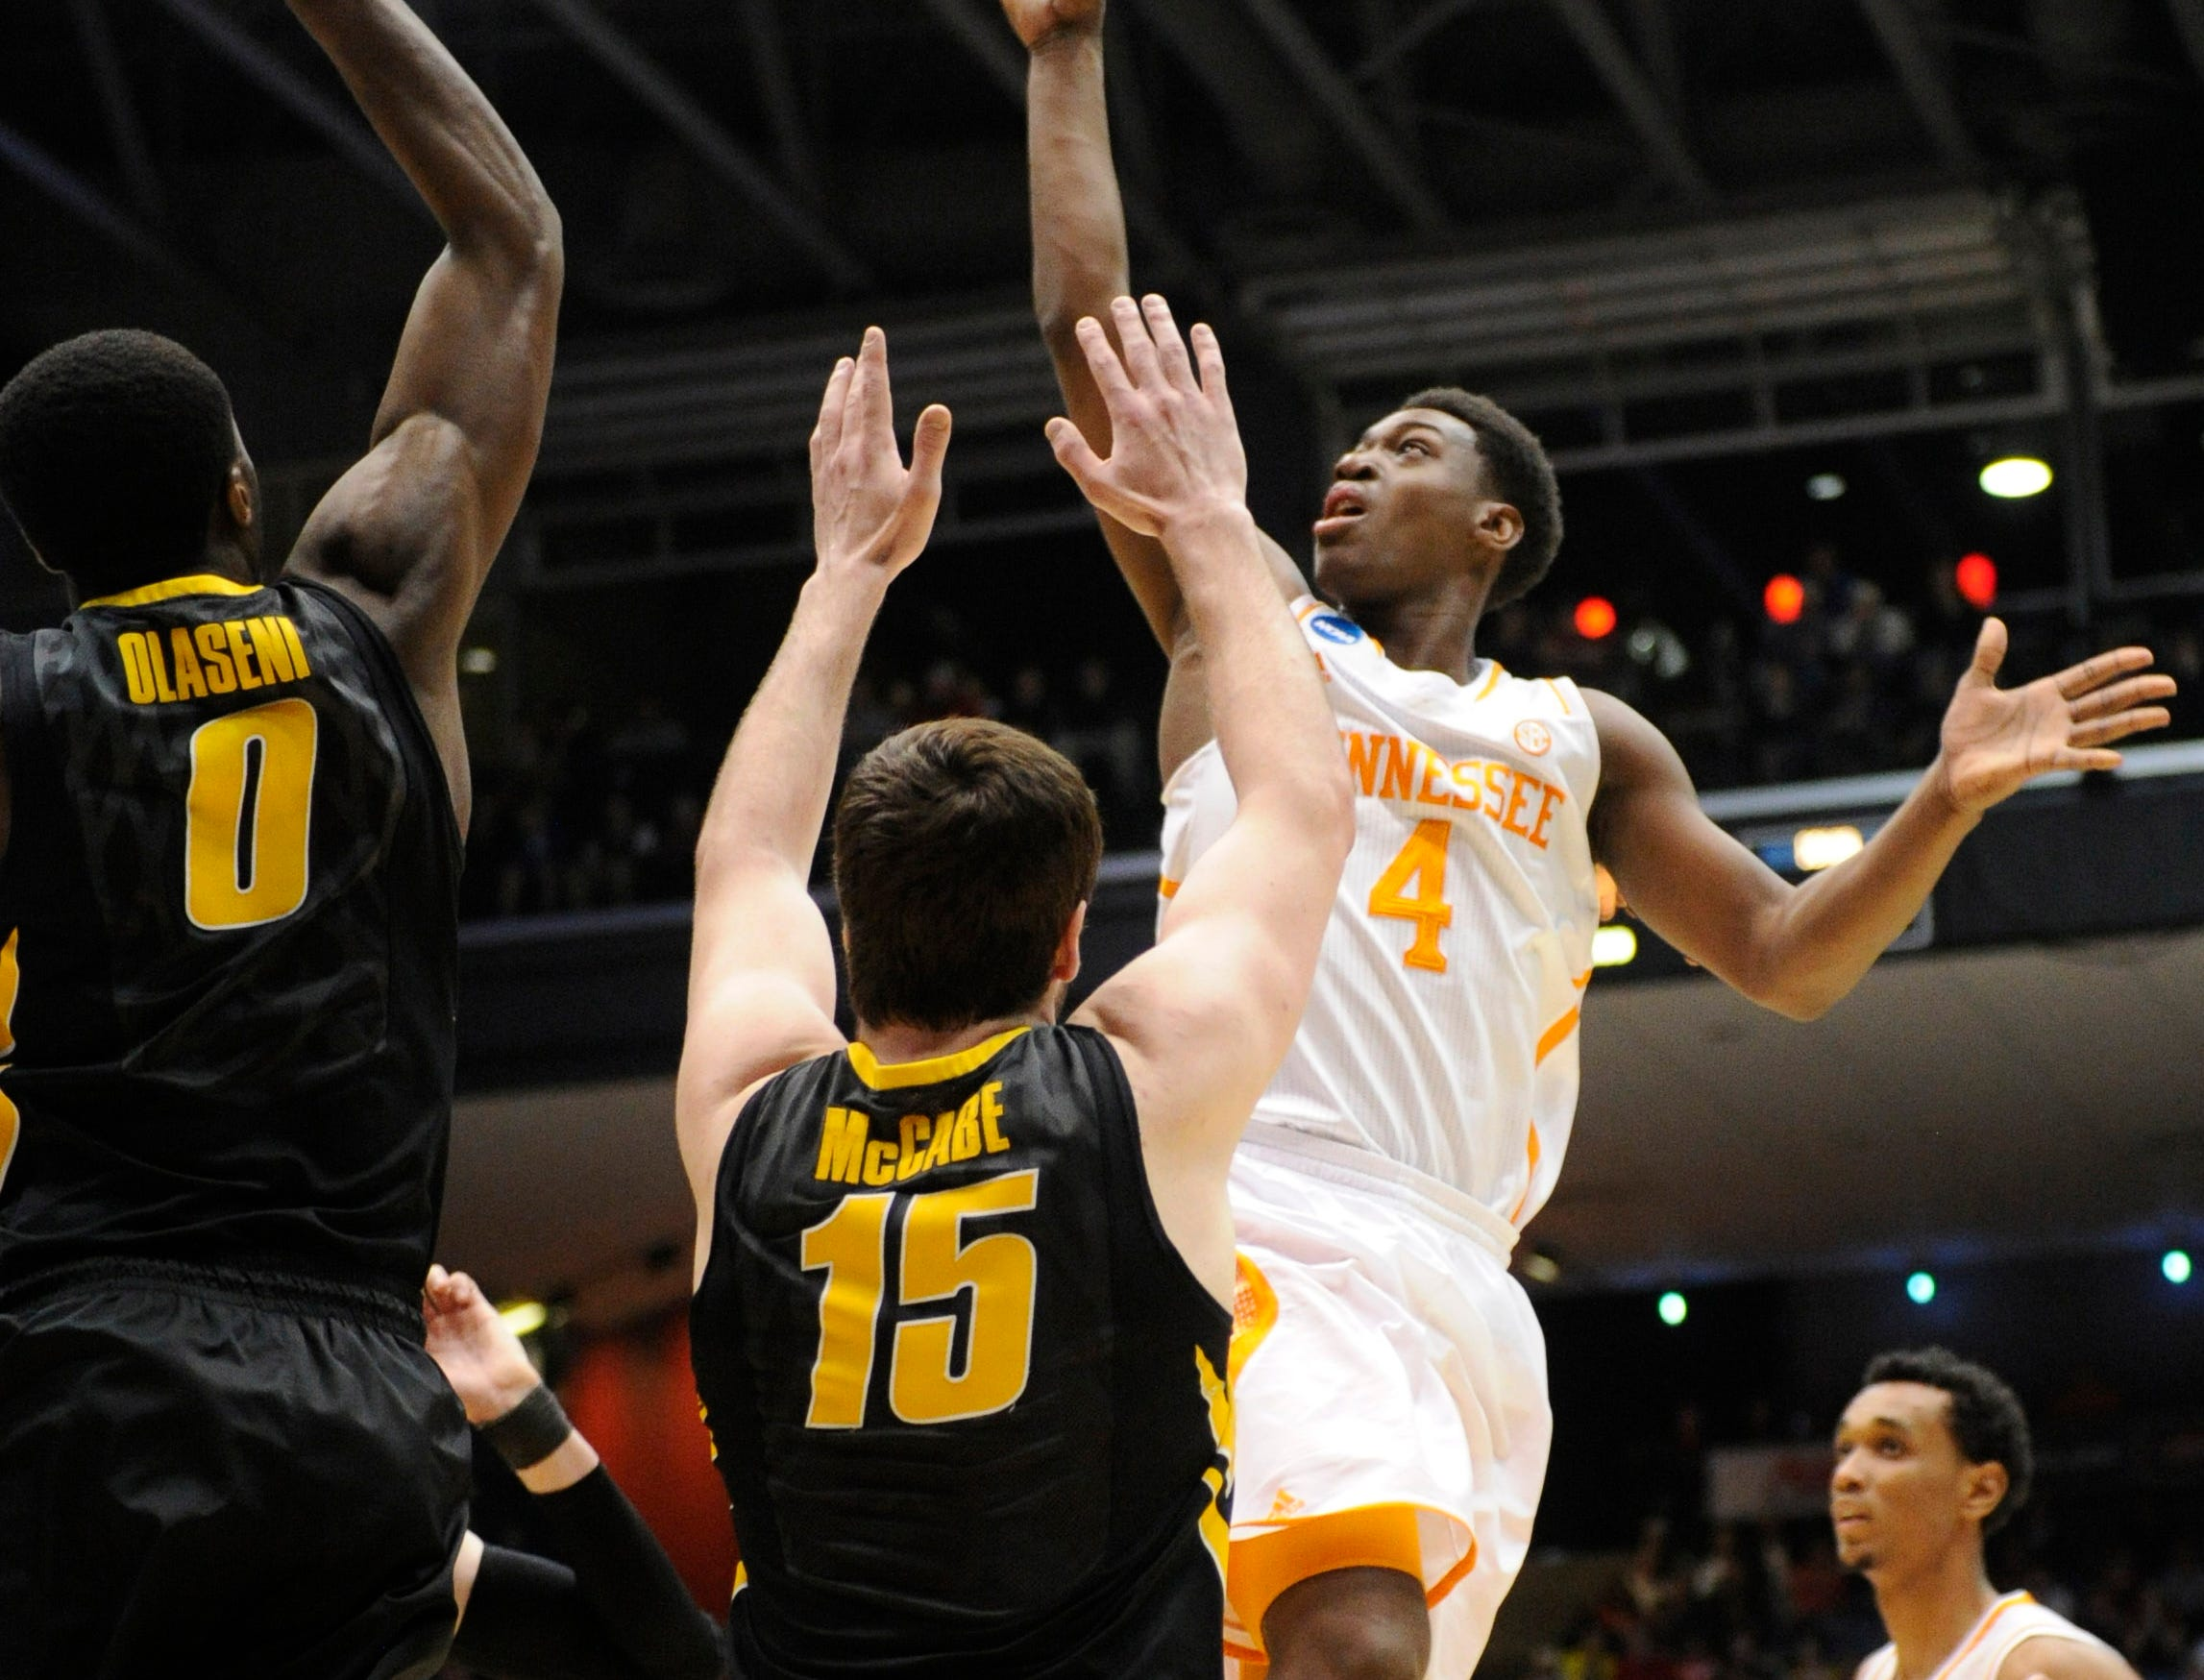 Tennessee guard Armani Moore (4) attempts a jumper against Iowa center Gabriel Olaseni (0) and Iowa forward Zach McCabe (15) during the first half of an NCAA tournament First Four play-in game at the University of Dayton Arena in Dayton, Ohio on Wednesday, March 19, 2014.